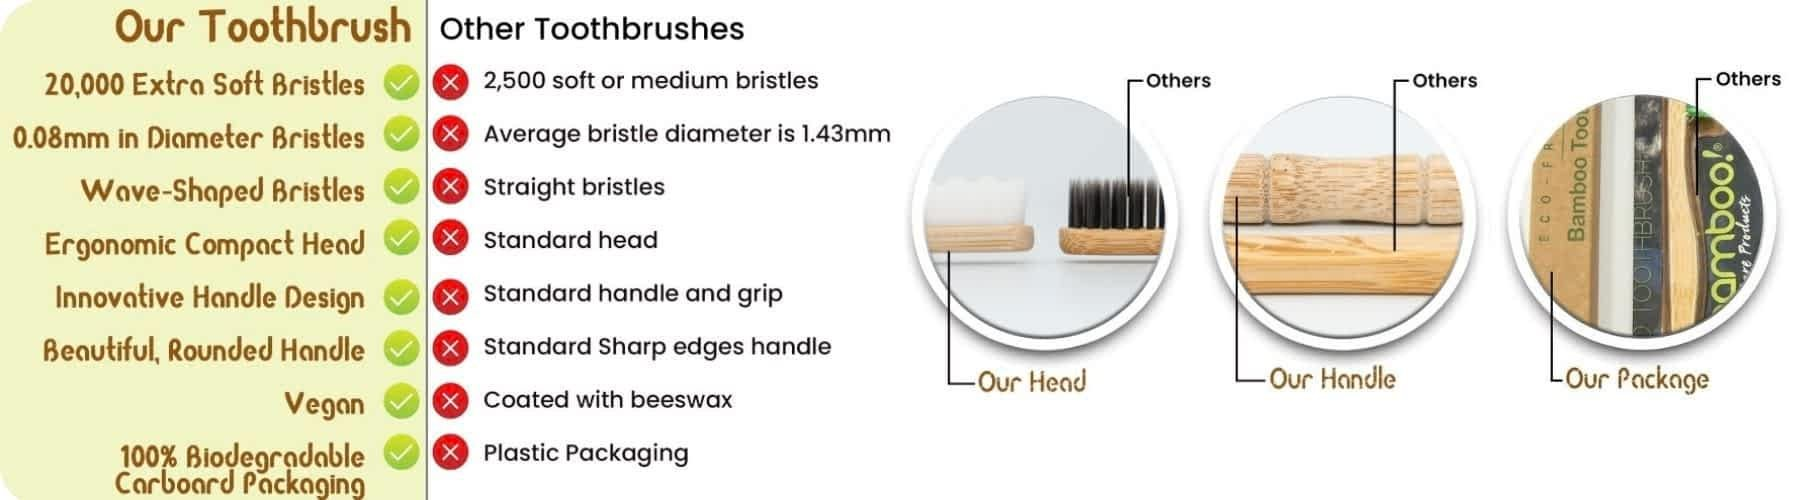 How Sensory Stand toothbrush features compare with other toothbrushes